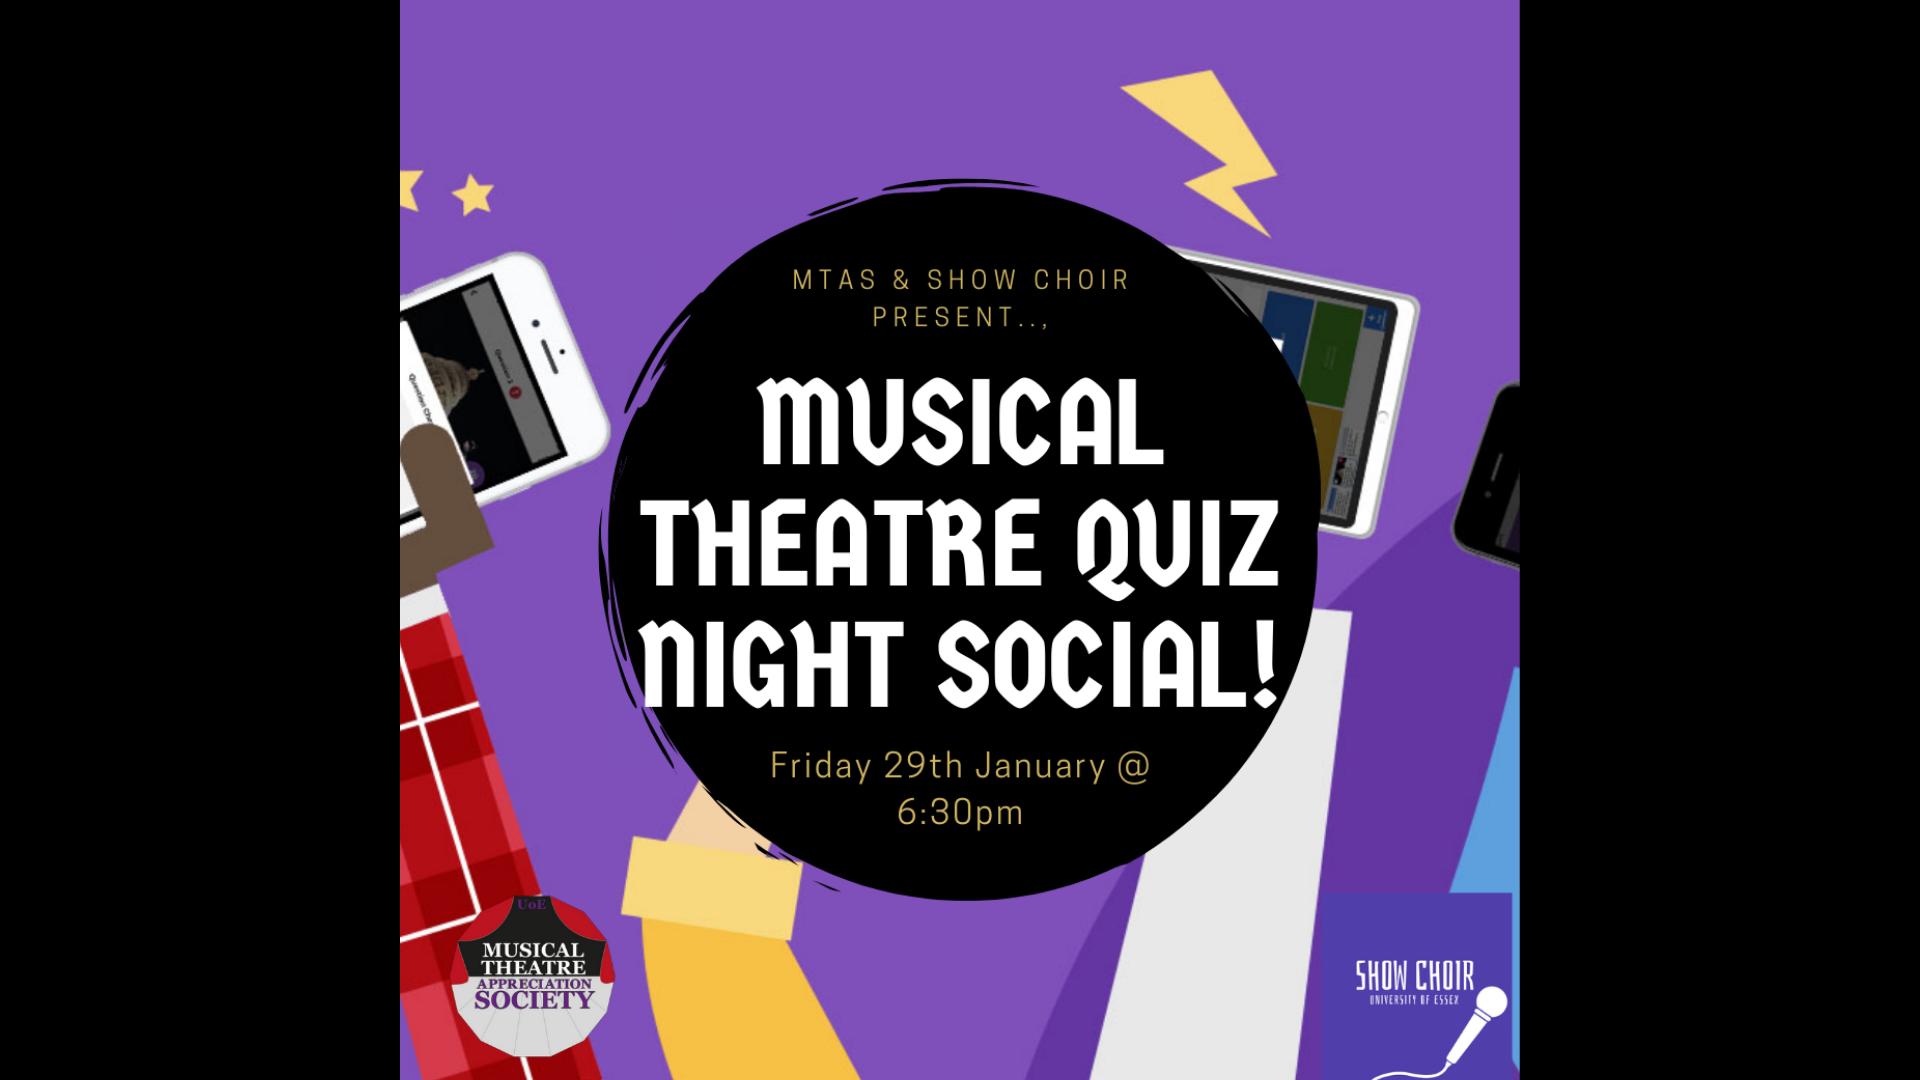 Musical Theatre Quiz Night Social (MTAS and Show Choir Collab)